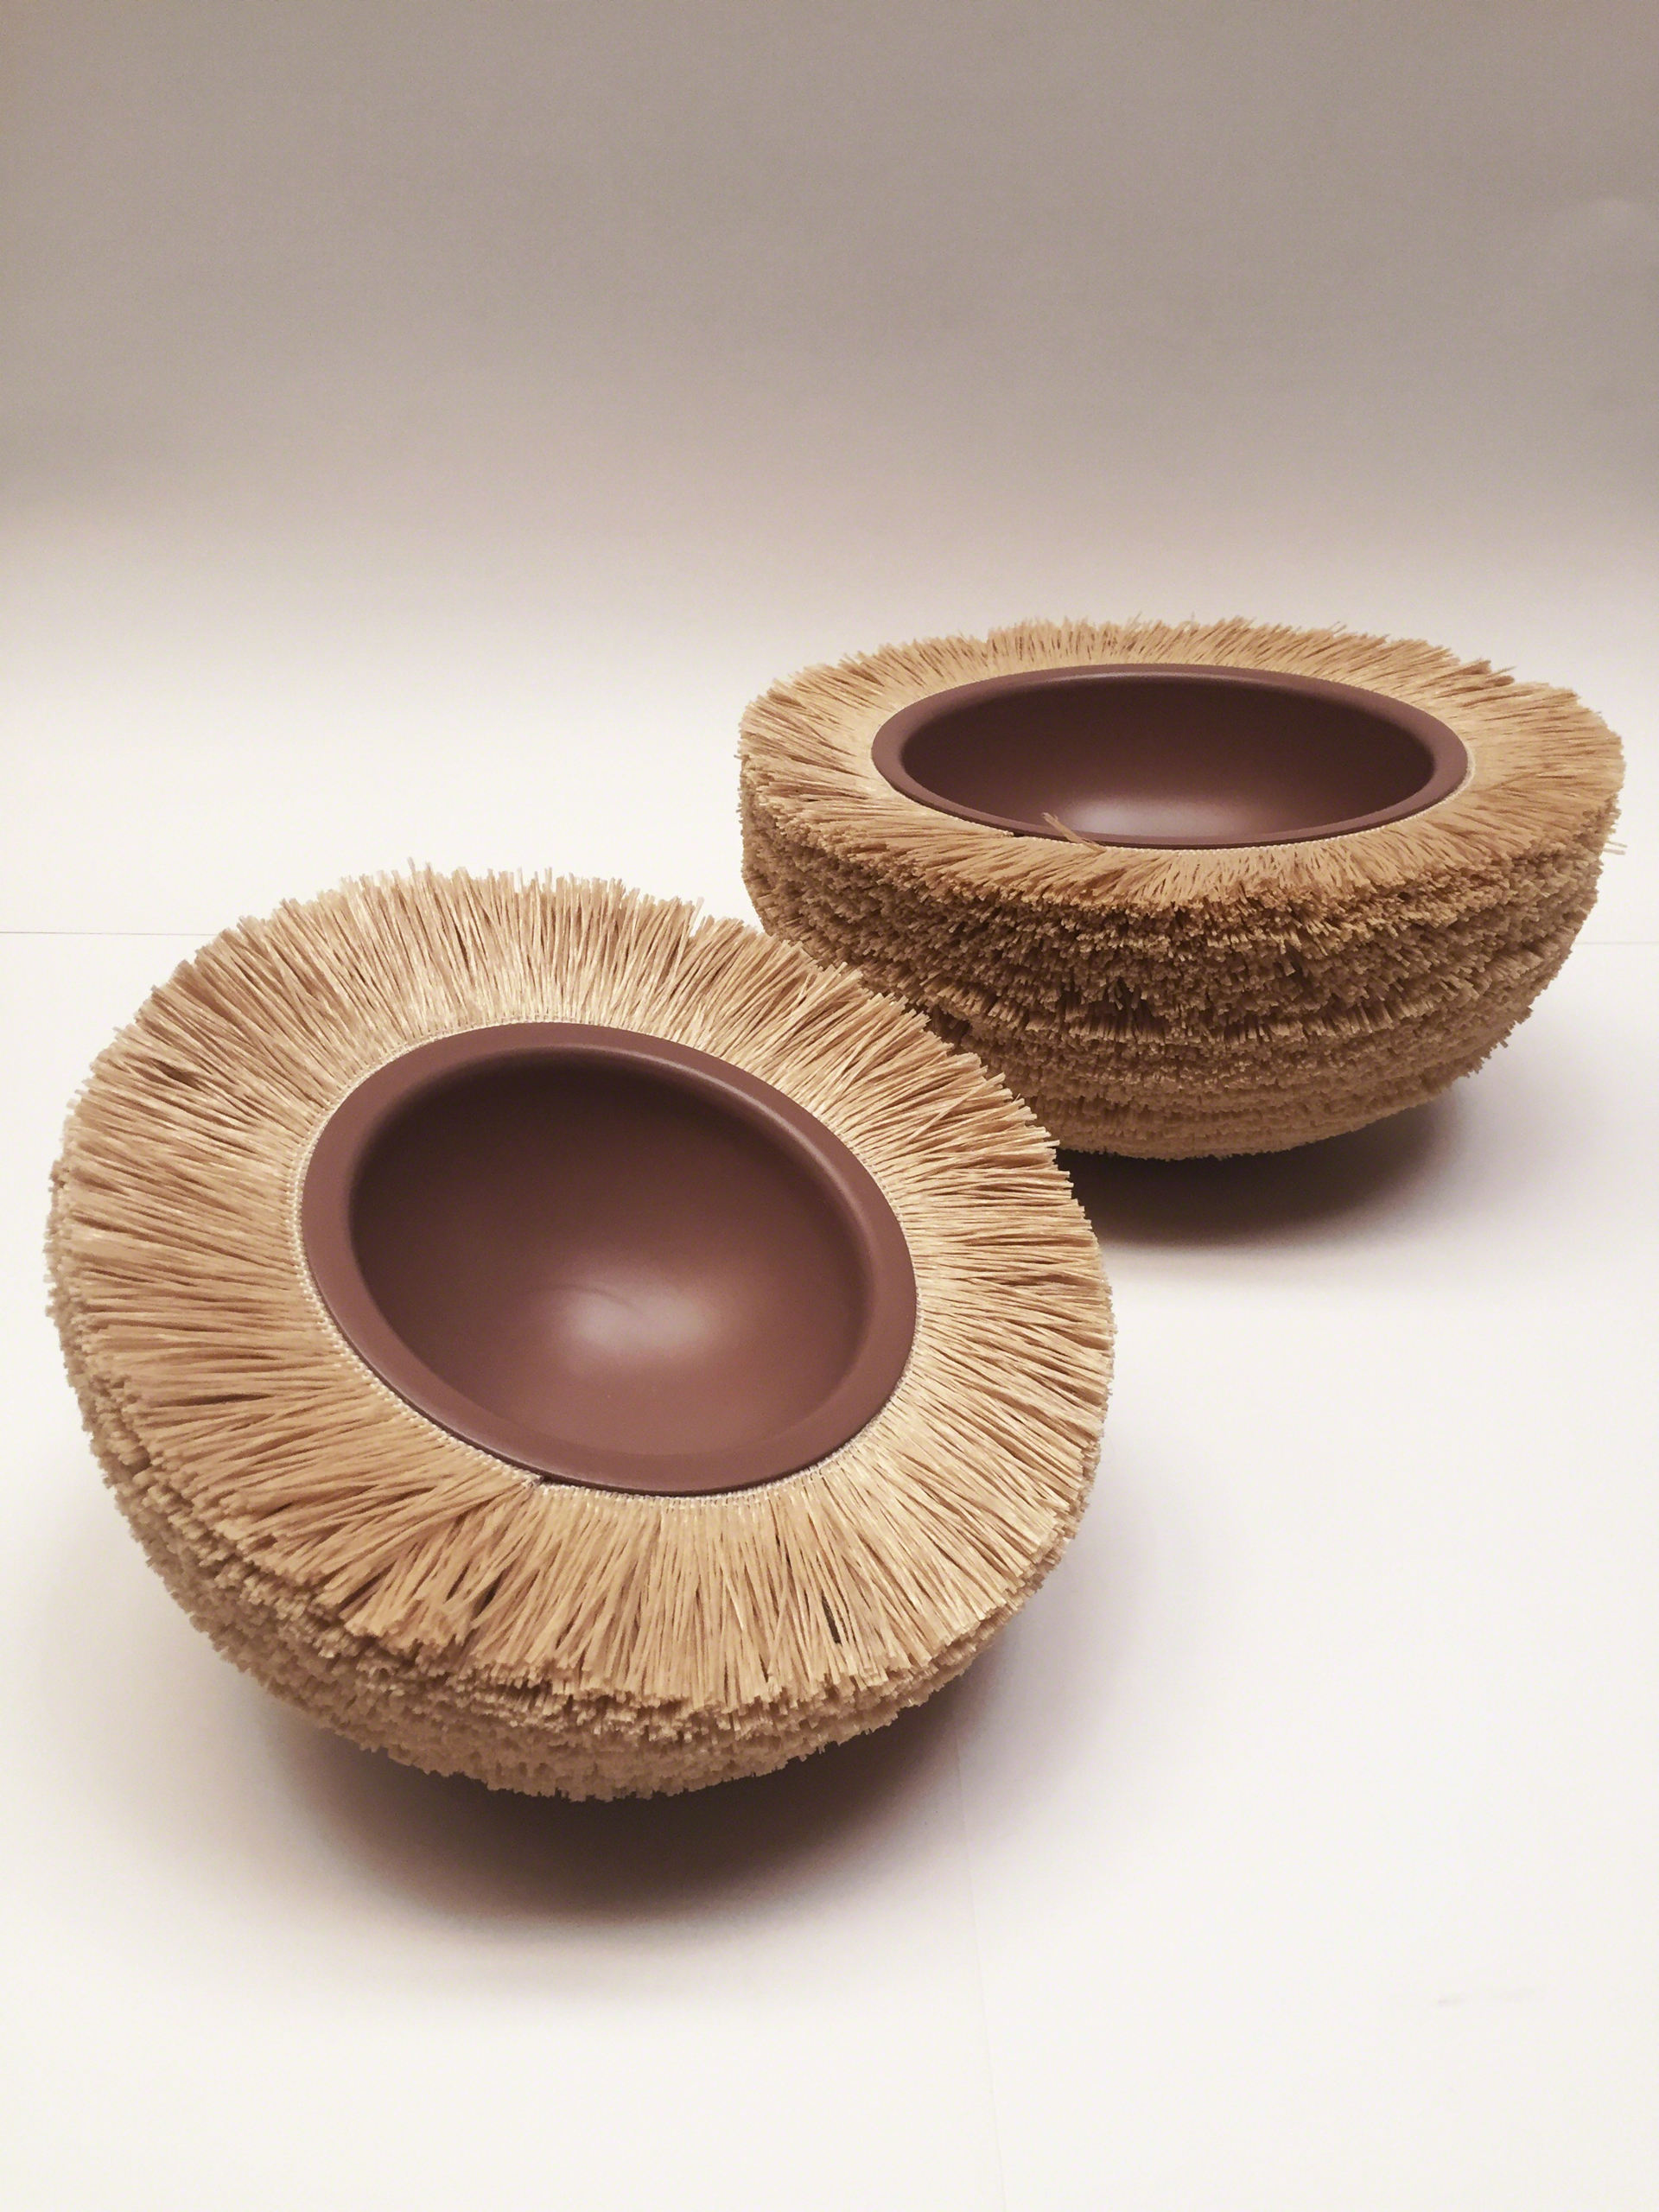 """Nido"" Bowl by Cristian Mohaded"